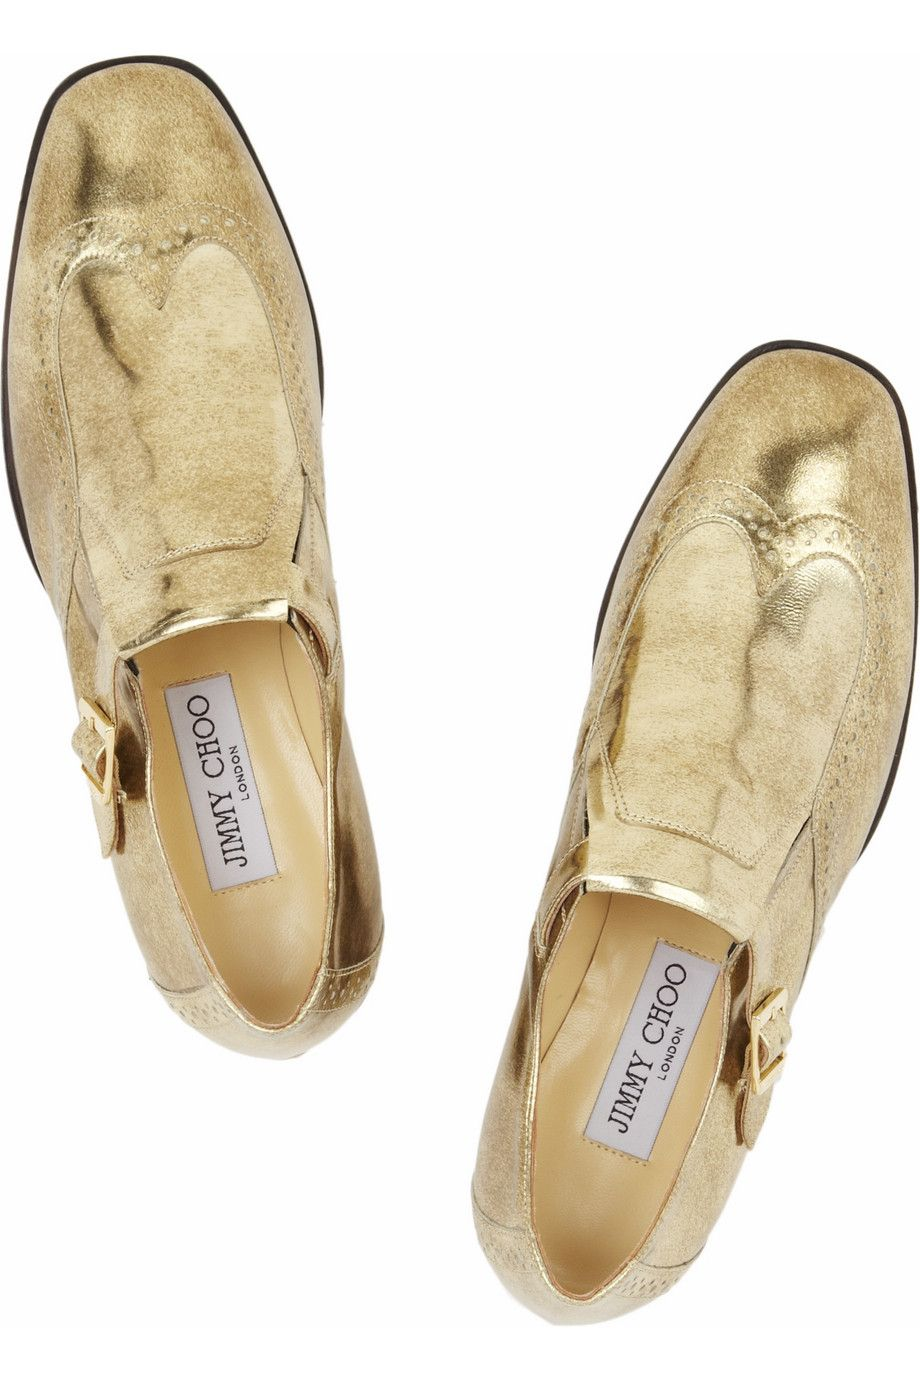 Jimmy Choo - Metallic leather monk-strap loafers